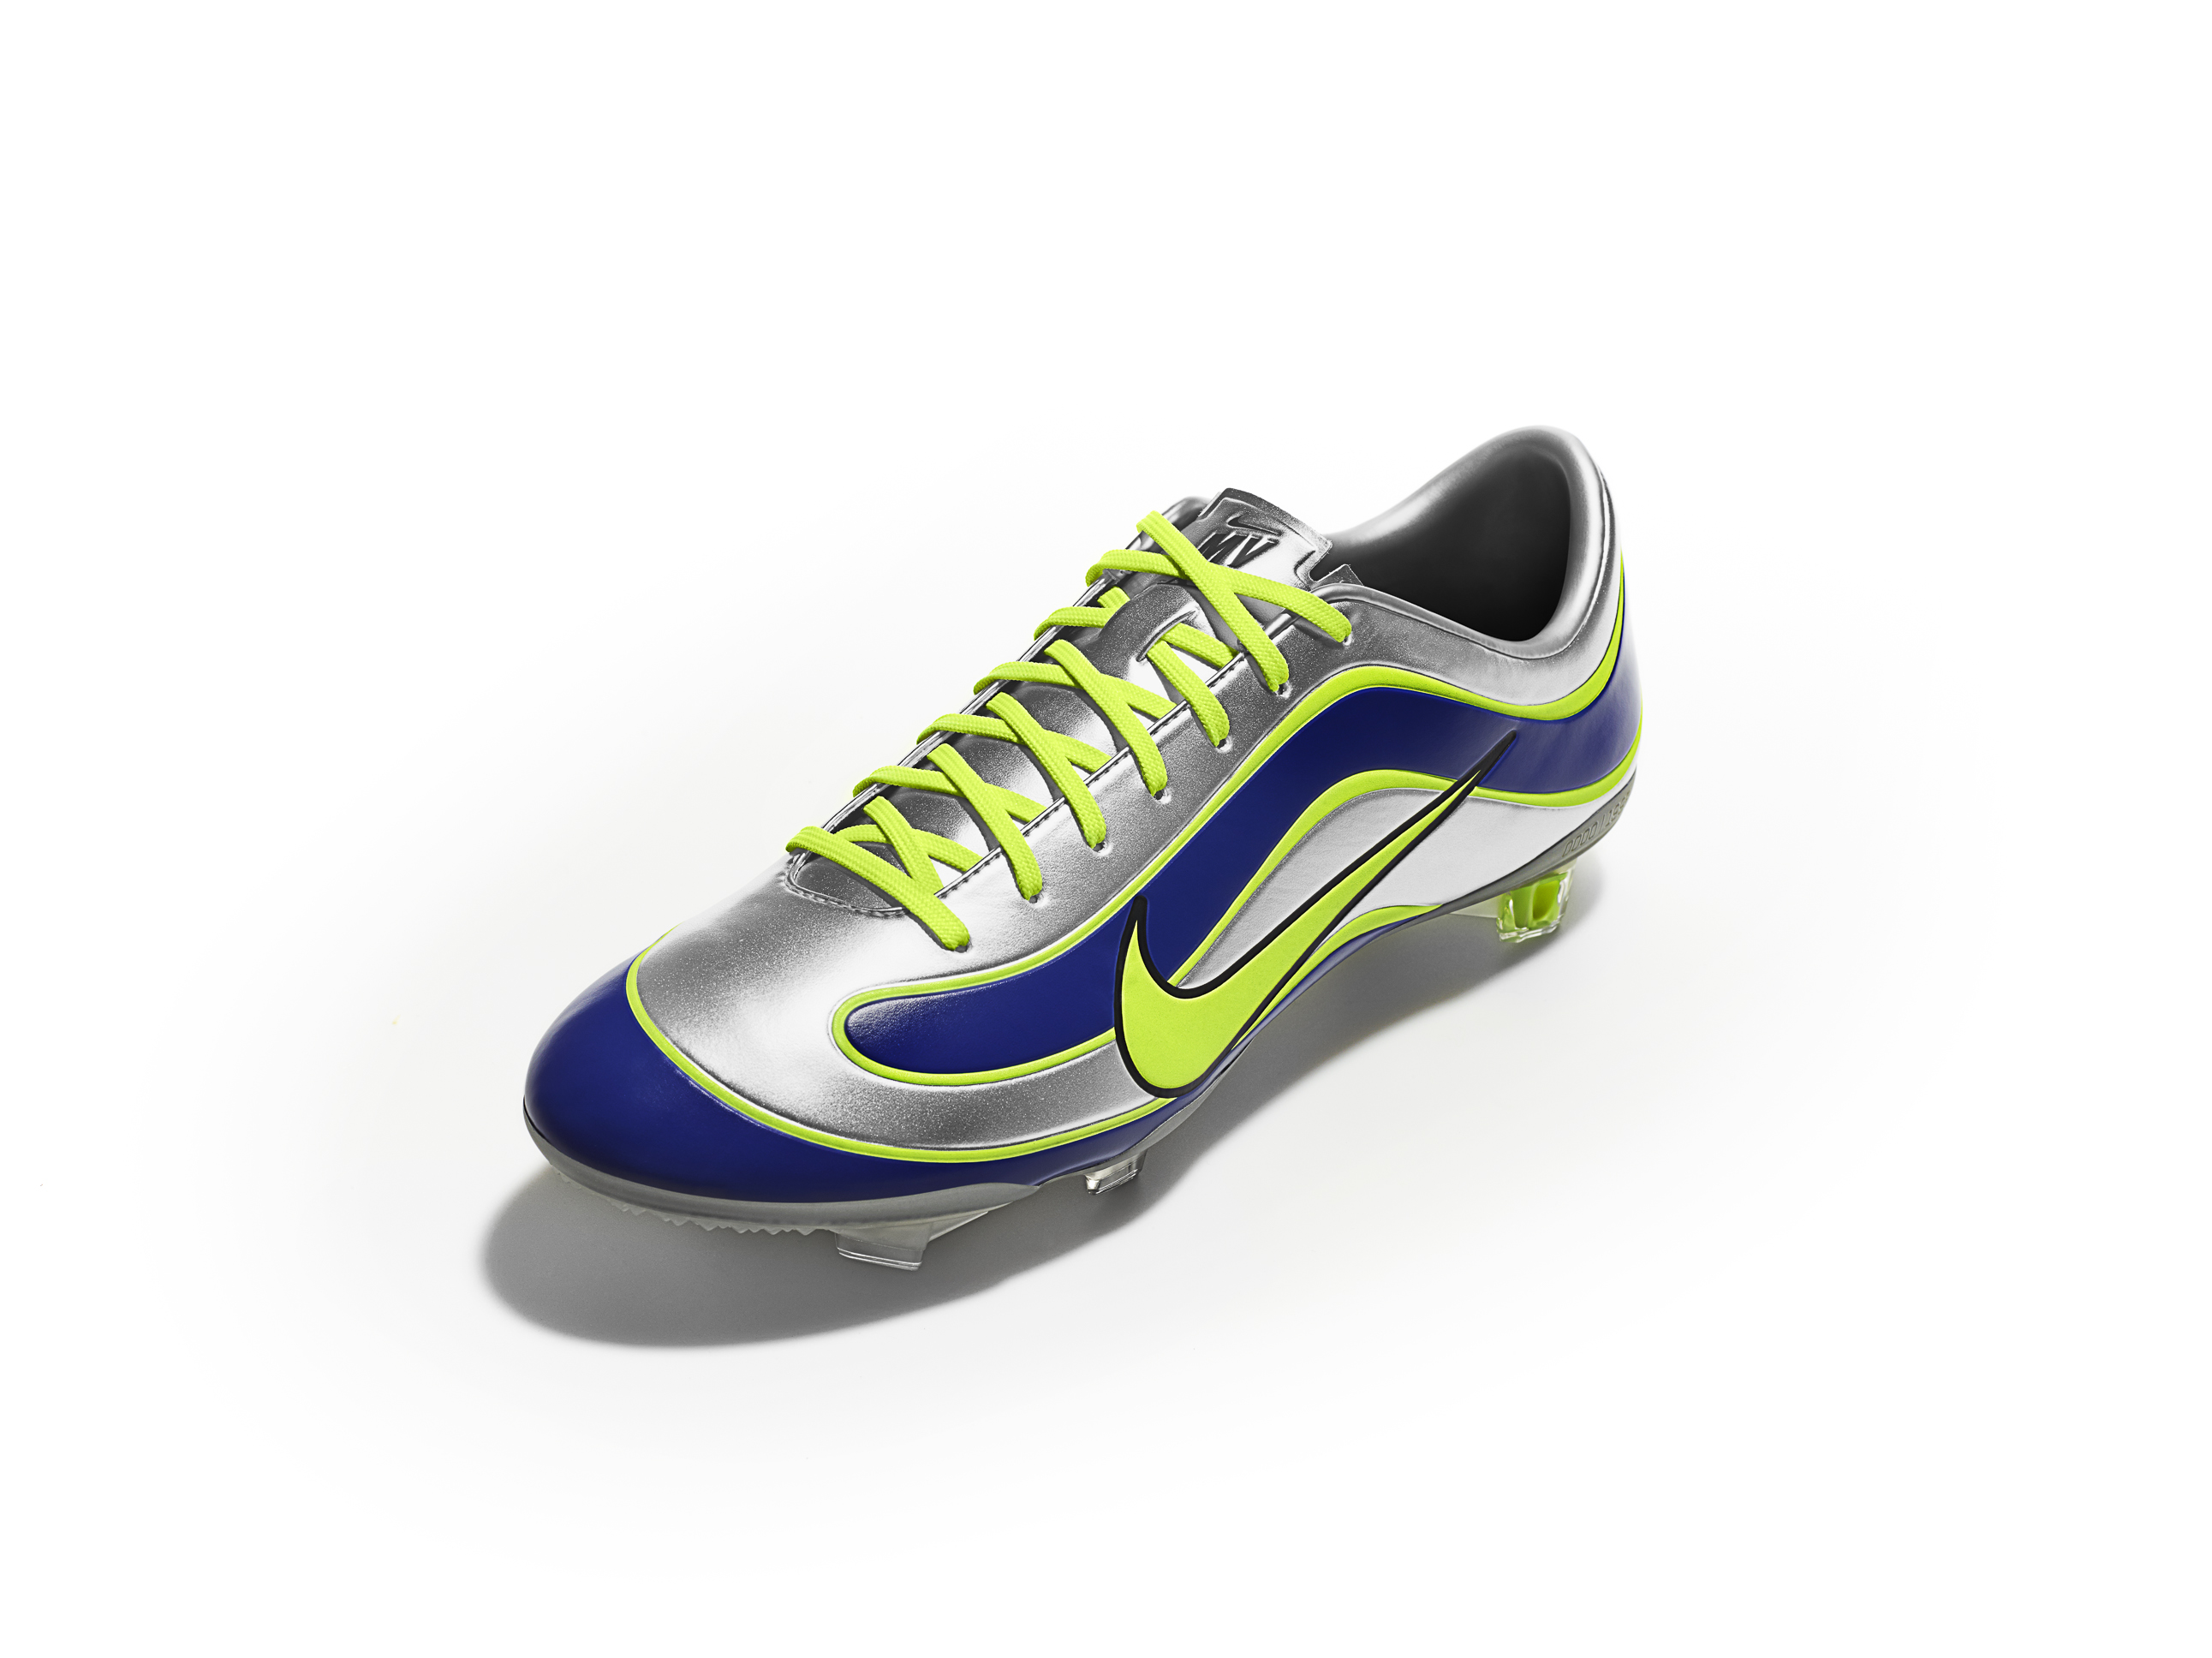 29324dd303a9 Mercurial_Vapor_XI_SE_Top. In 1998 Nike launched the first Nike Mercurial  football boot ...